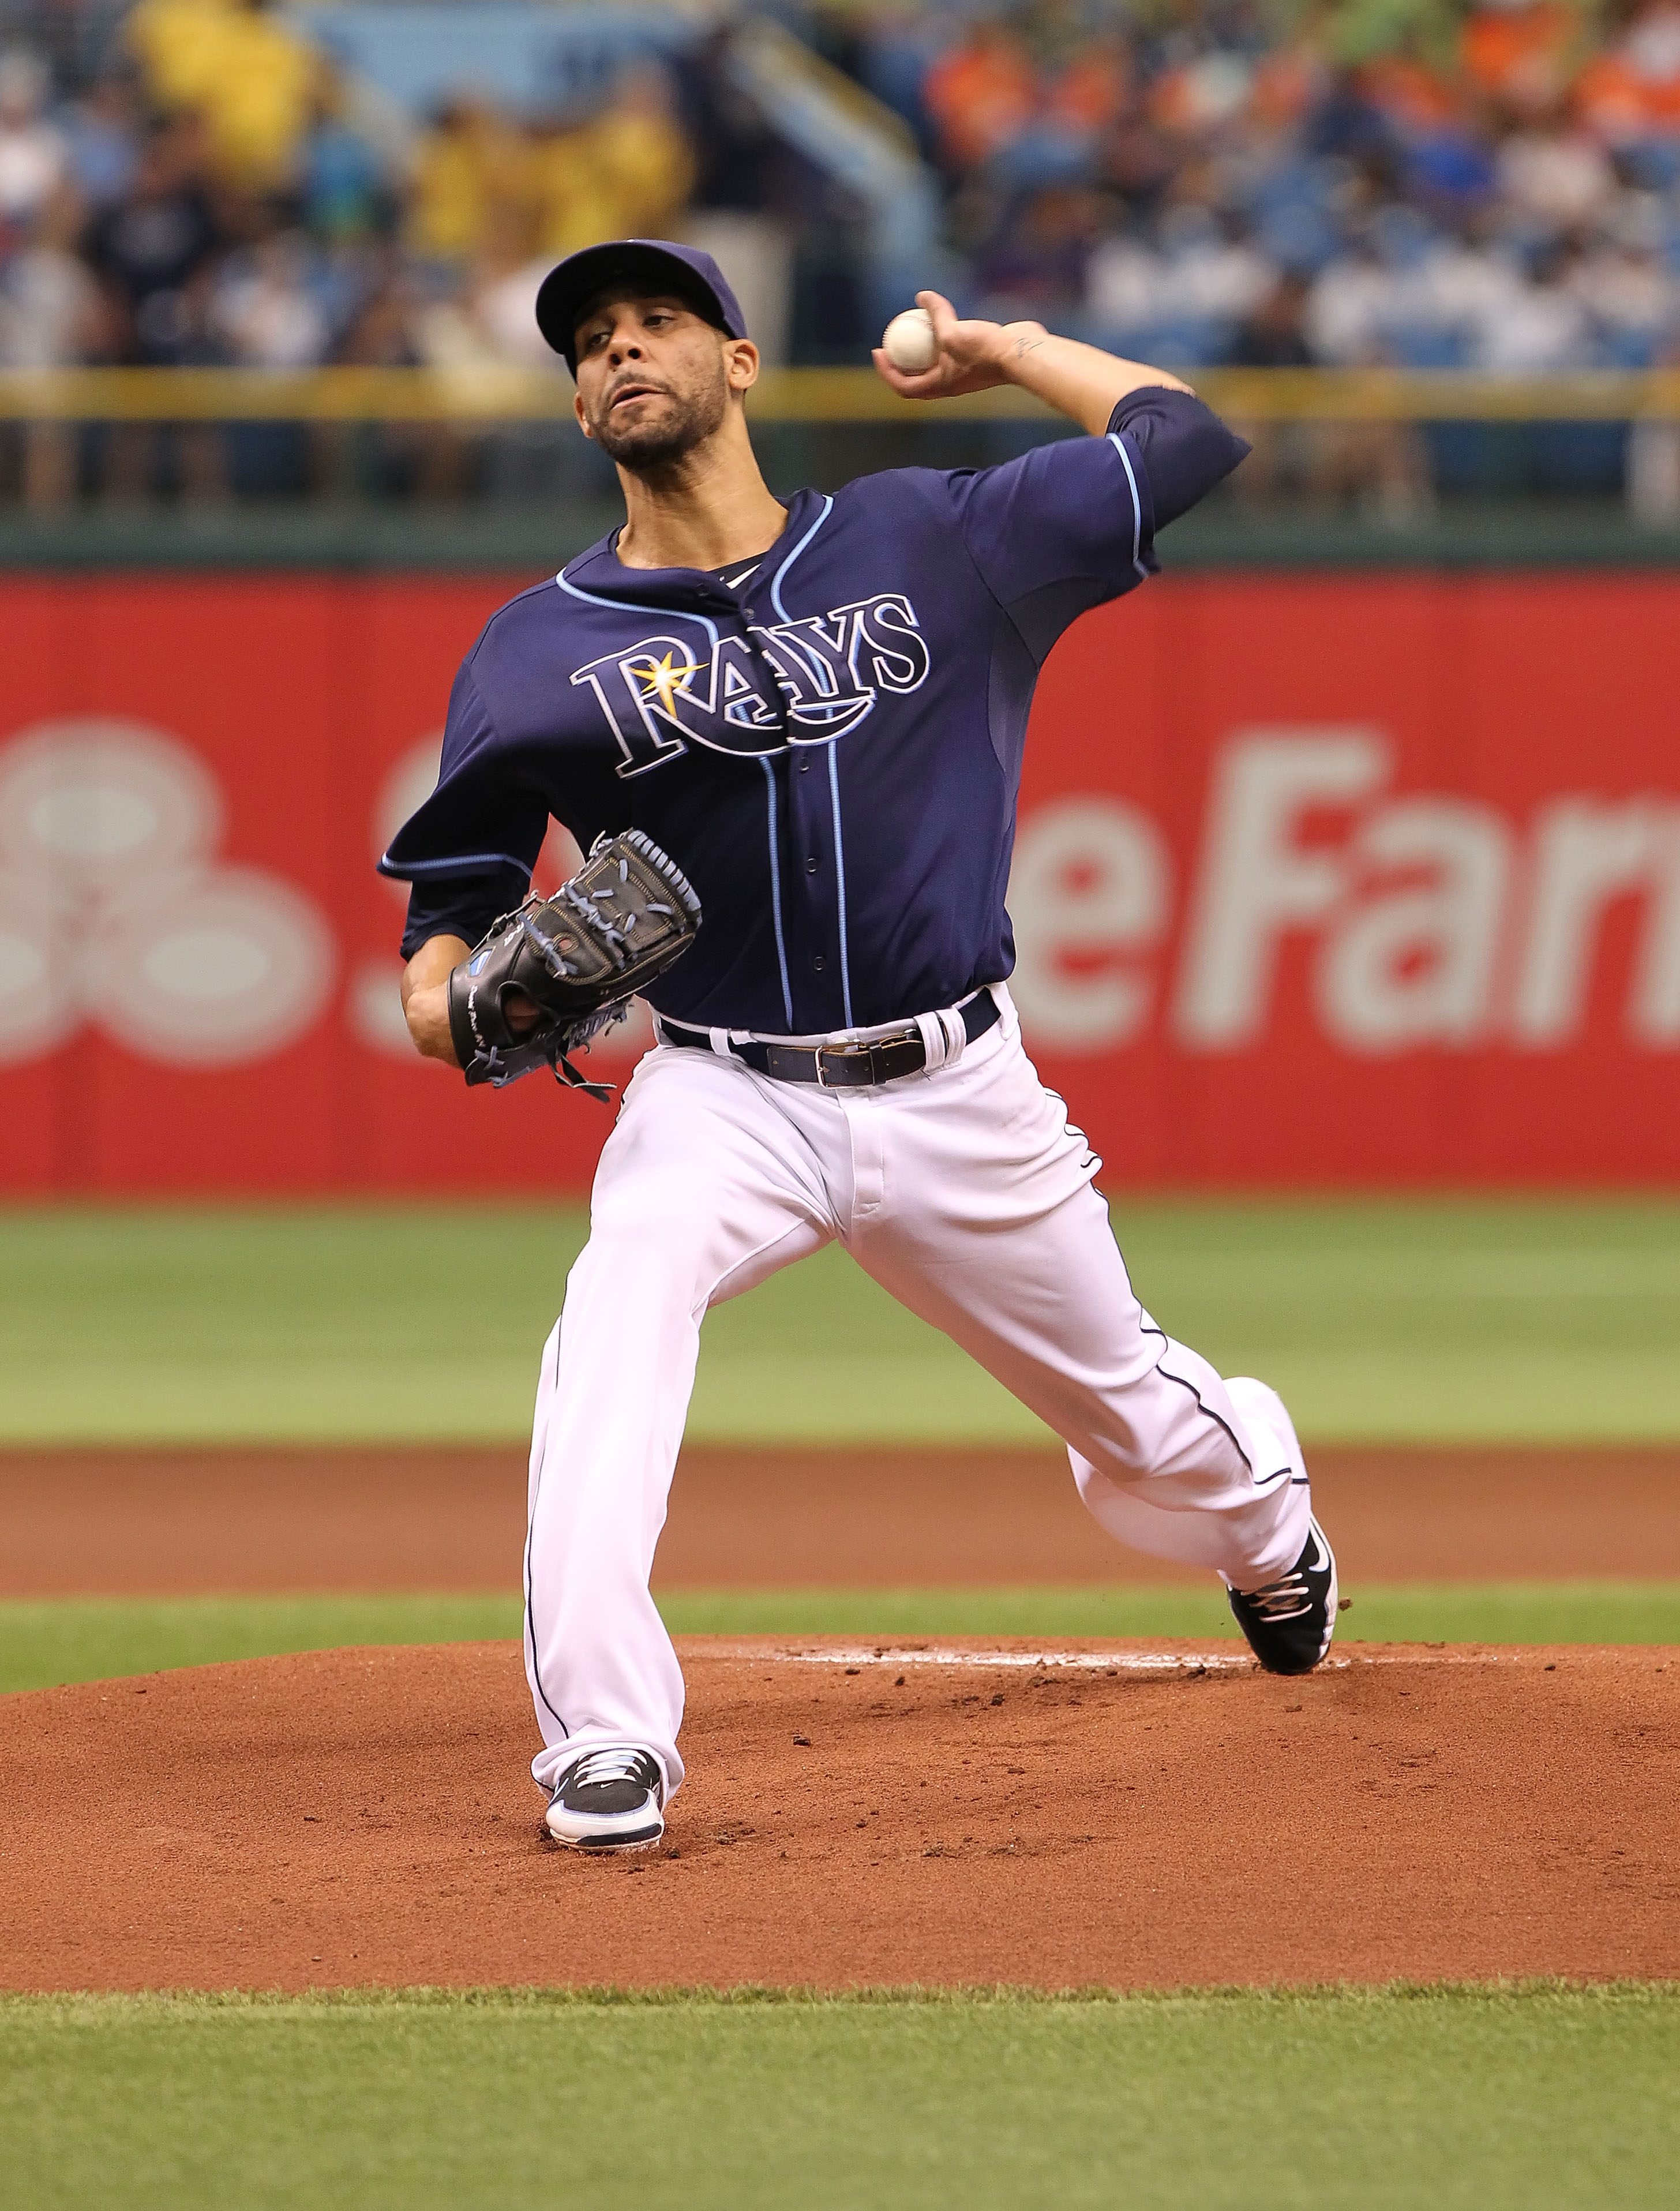 July 19, 2012; St. Petersburg, FL, USA; Tampa Bay Rays starting pitcher David Price (14) throws a pitch in the first inning against the Cleveland Indians at Tropicana Field (Kim Klement-US PRESSWIRE)